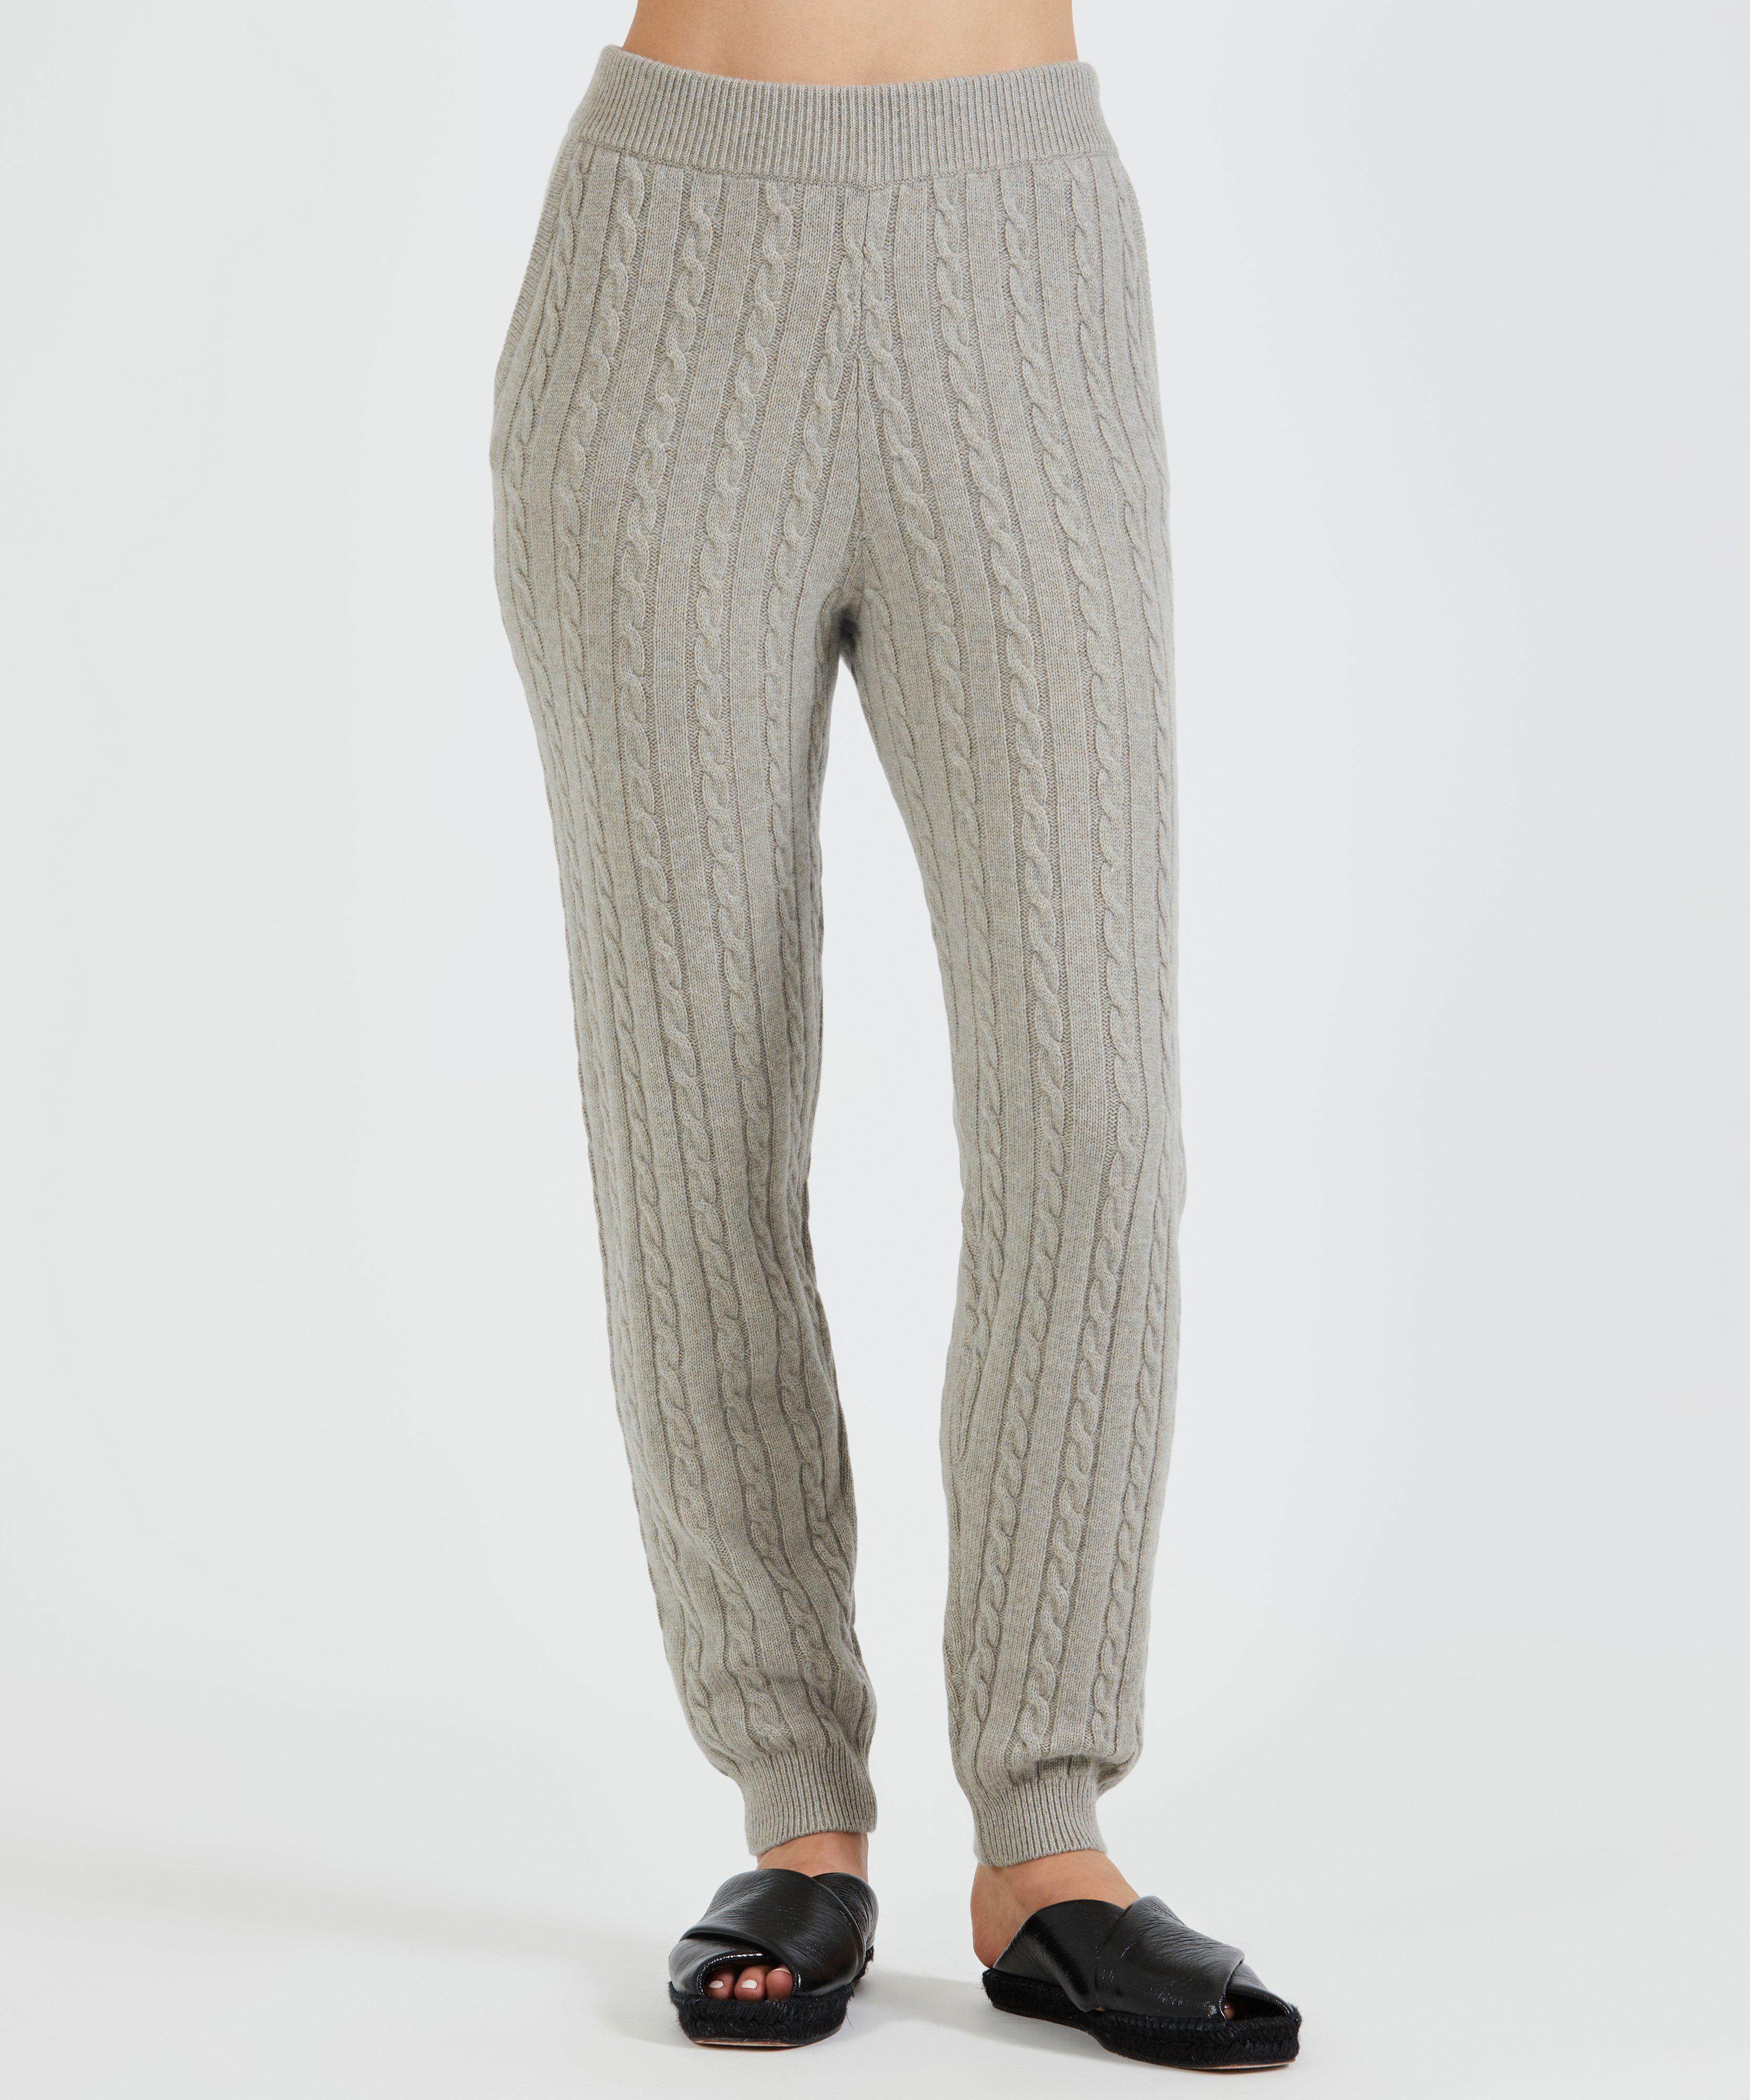 Luxe Wool Cashmere Cable Knit Pull-On Pant - Pumice